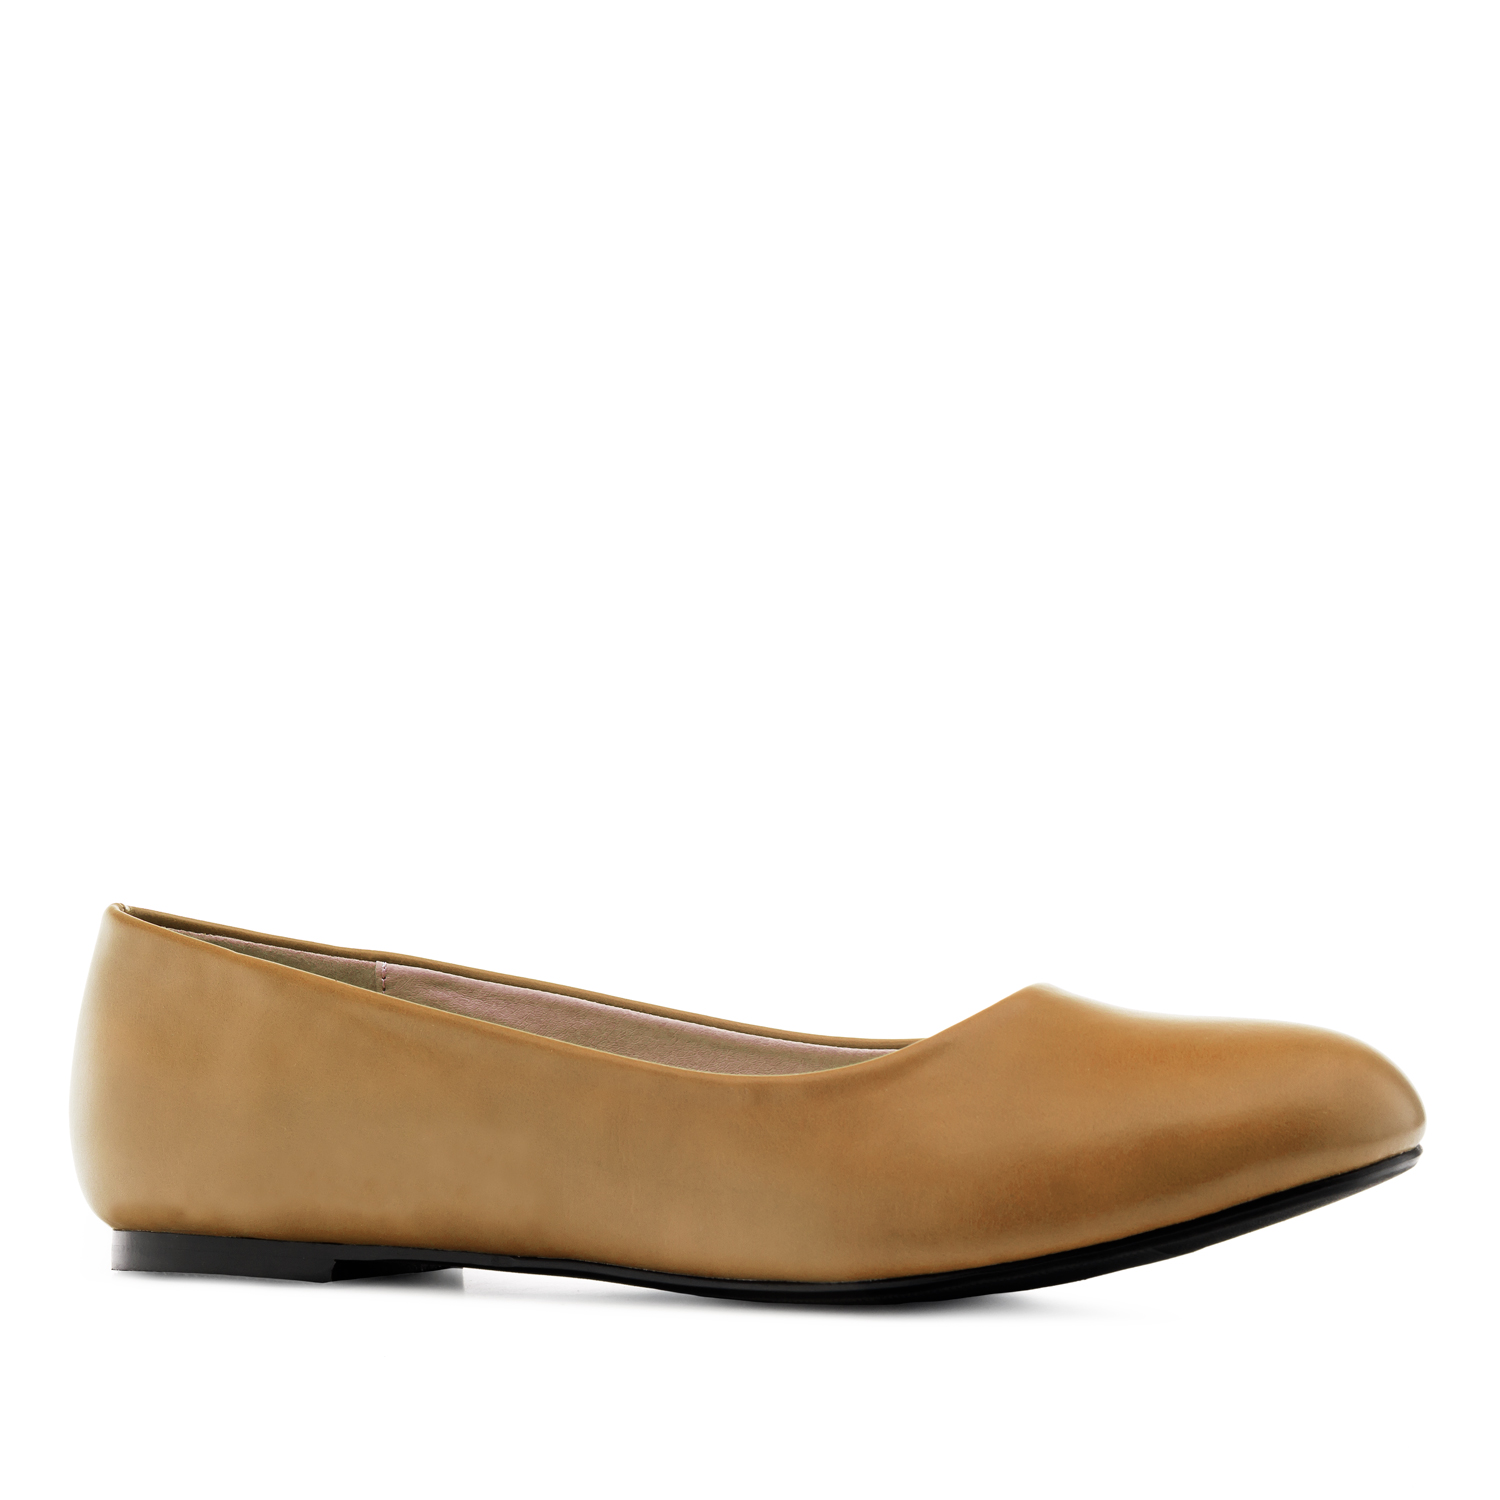 Plain Ballet Flats in Camel faux Leather